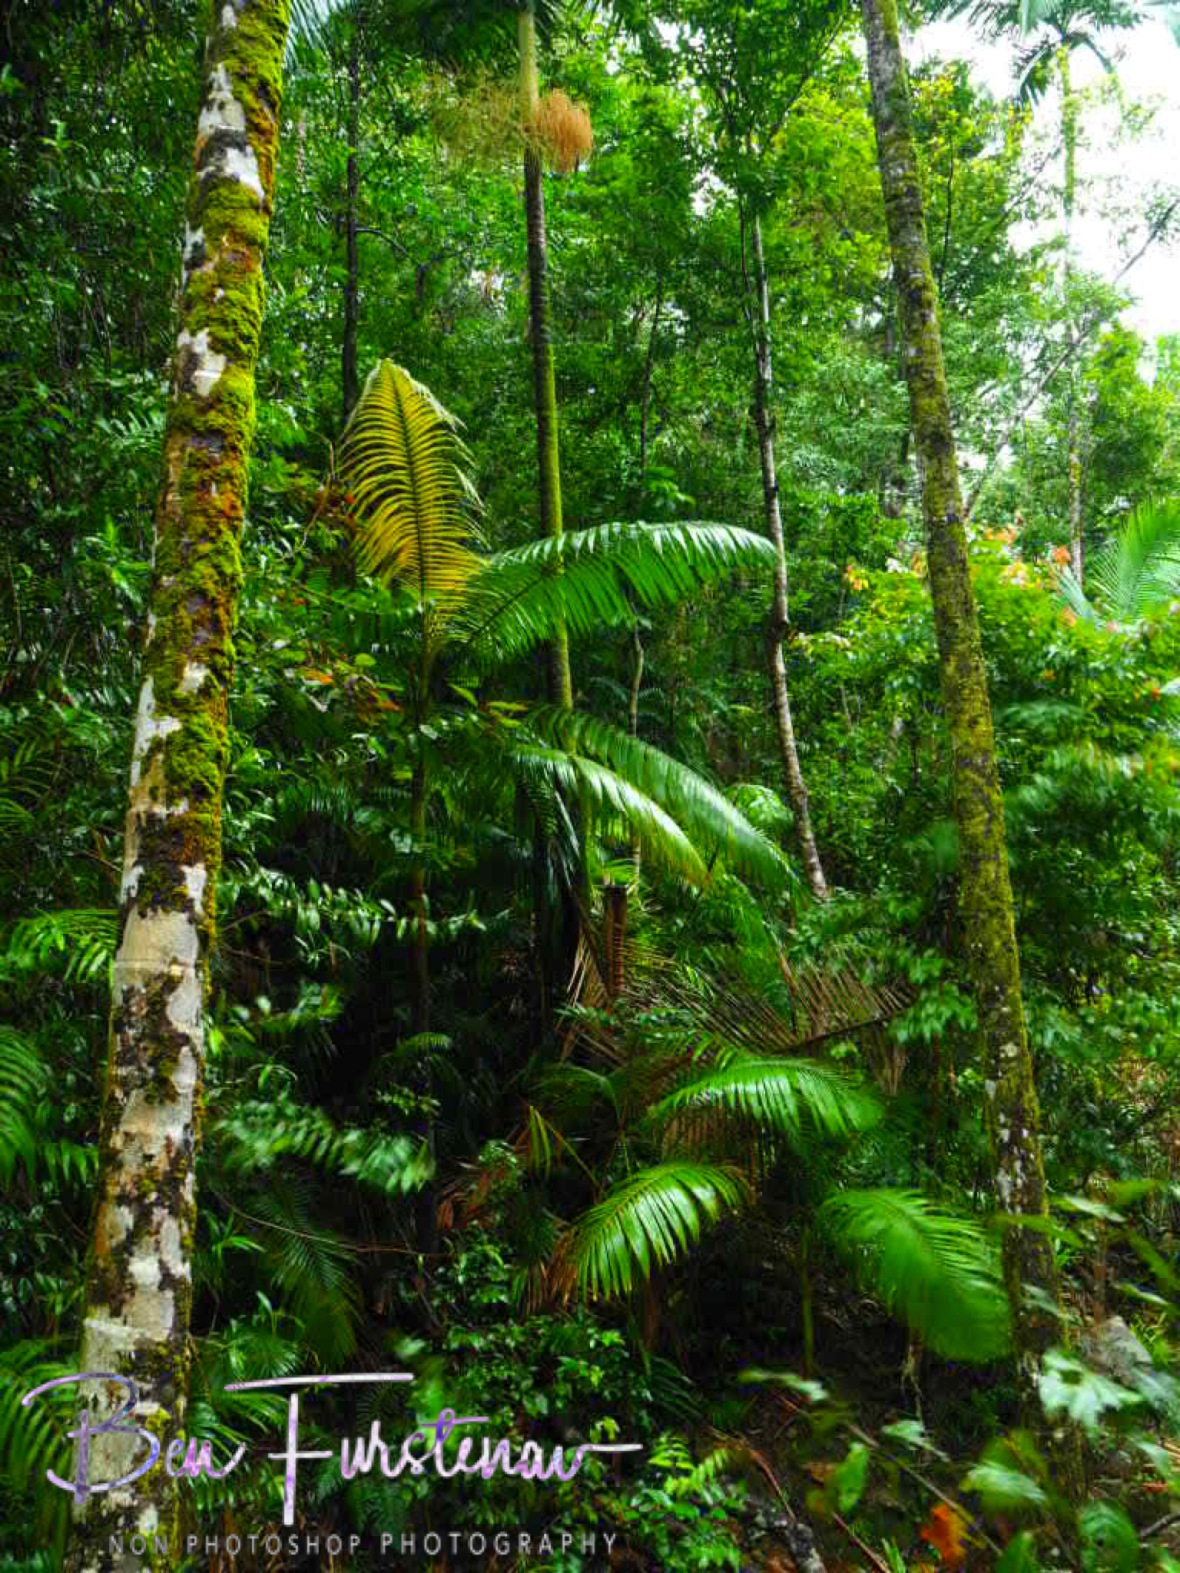 Lush foliage at Finch Hatton Gorge, Eungalla National Park, Queensland, Australia